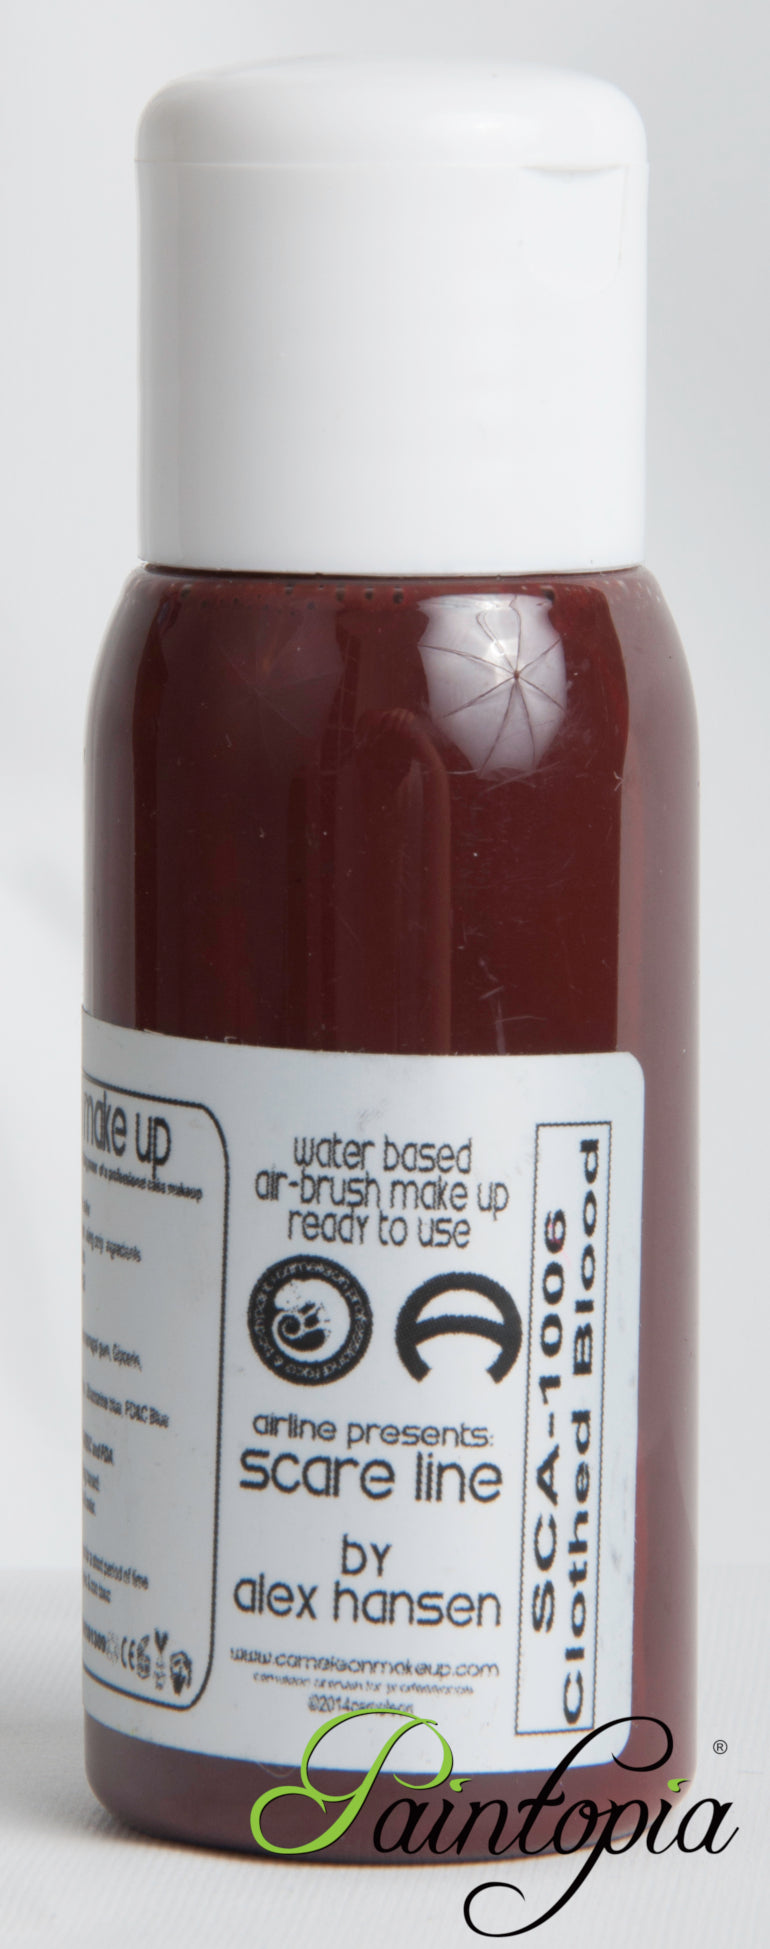 Cameleon airbrush paint in shade Clotted Blood. Produced in a 50ml plastic bottle.